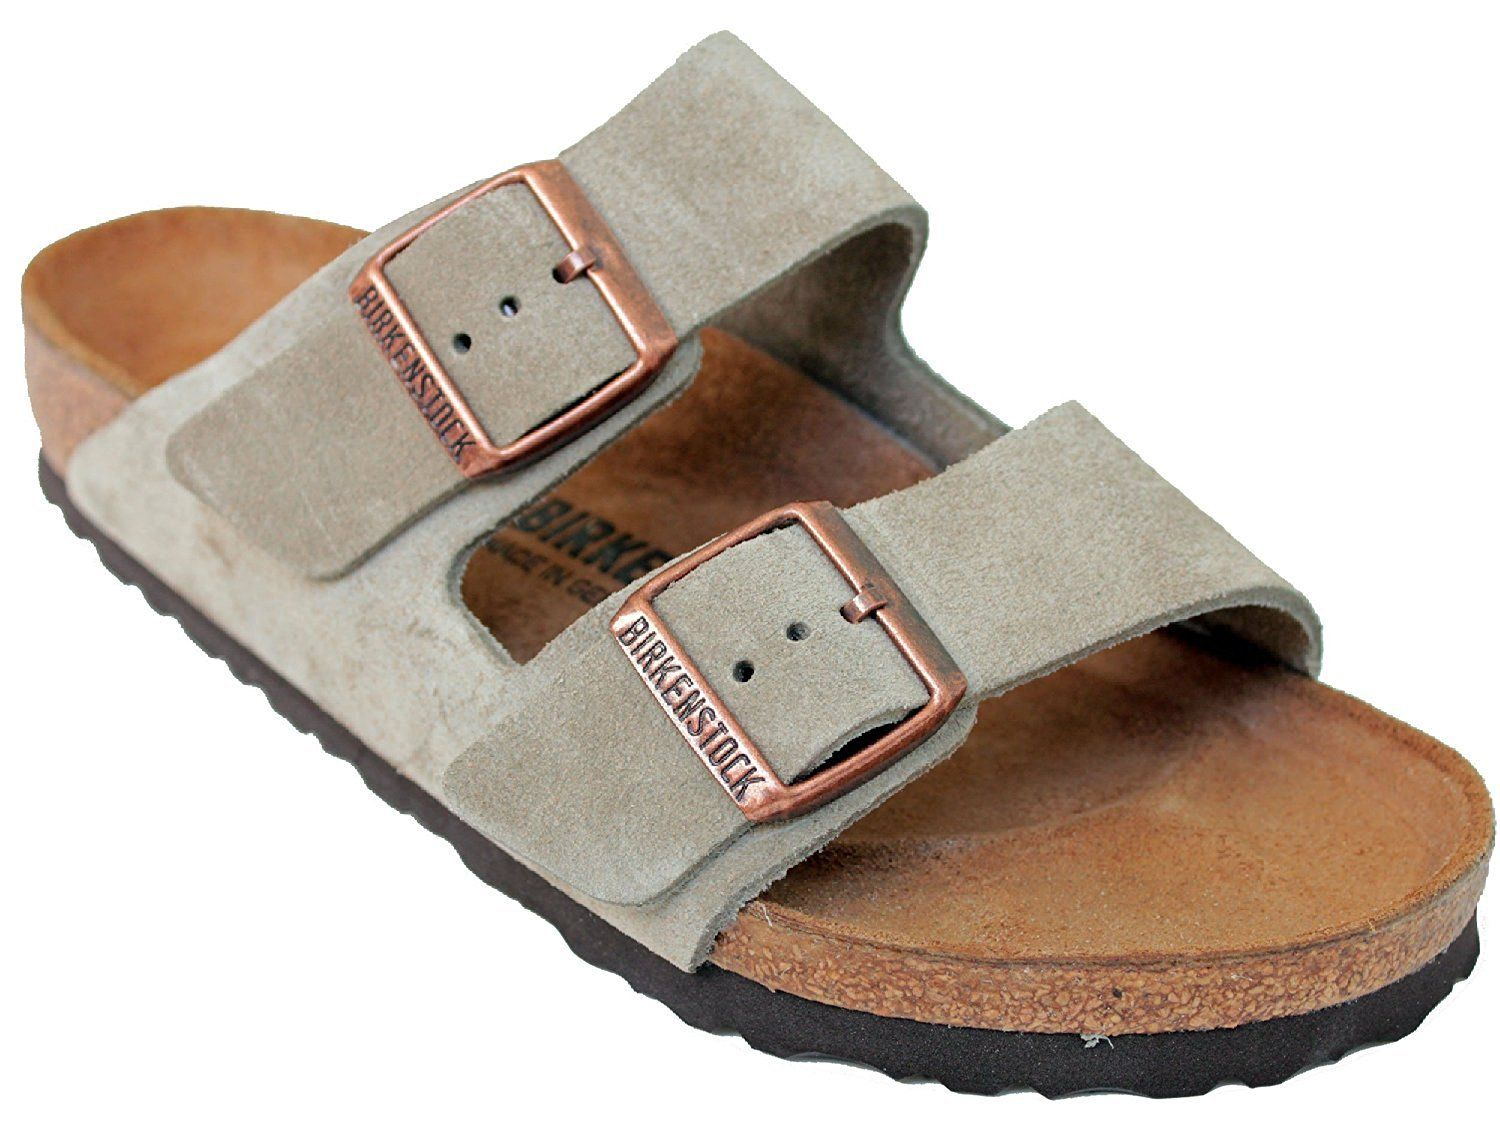 Birkenstock Arizona 2 Strap Suede Leather Sandals Taupe Light Sandy Beige Yellowish Brown Color Unisex 3 Women Sport Sandals Leather Sandals Suede Leather